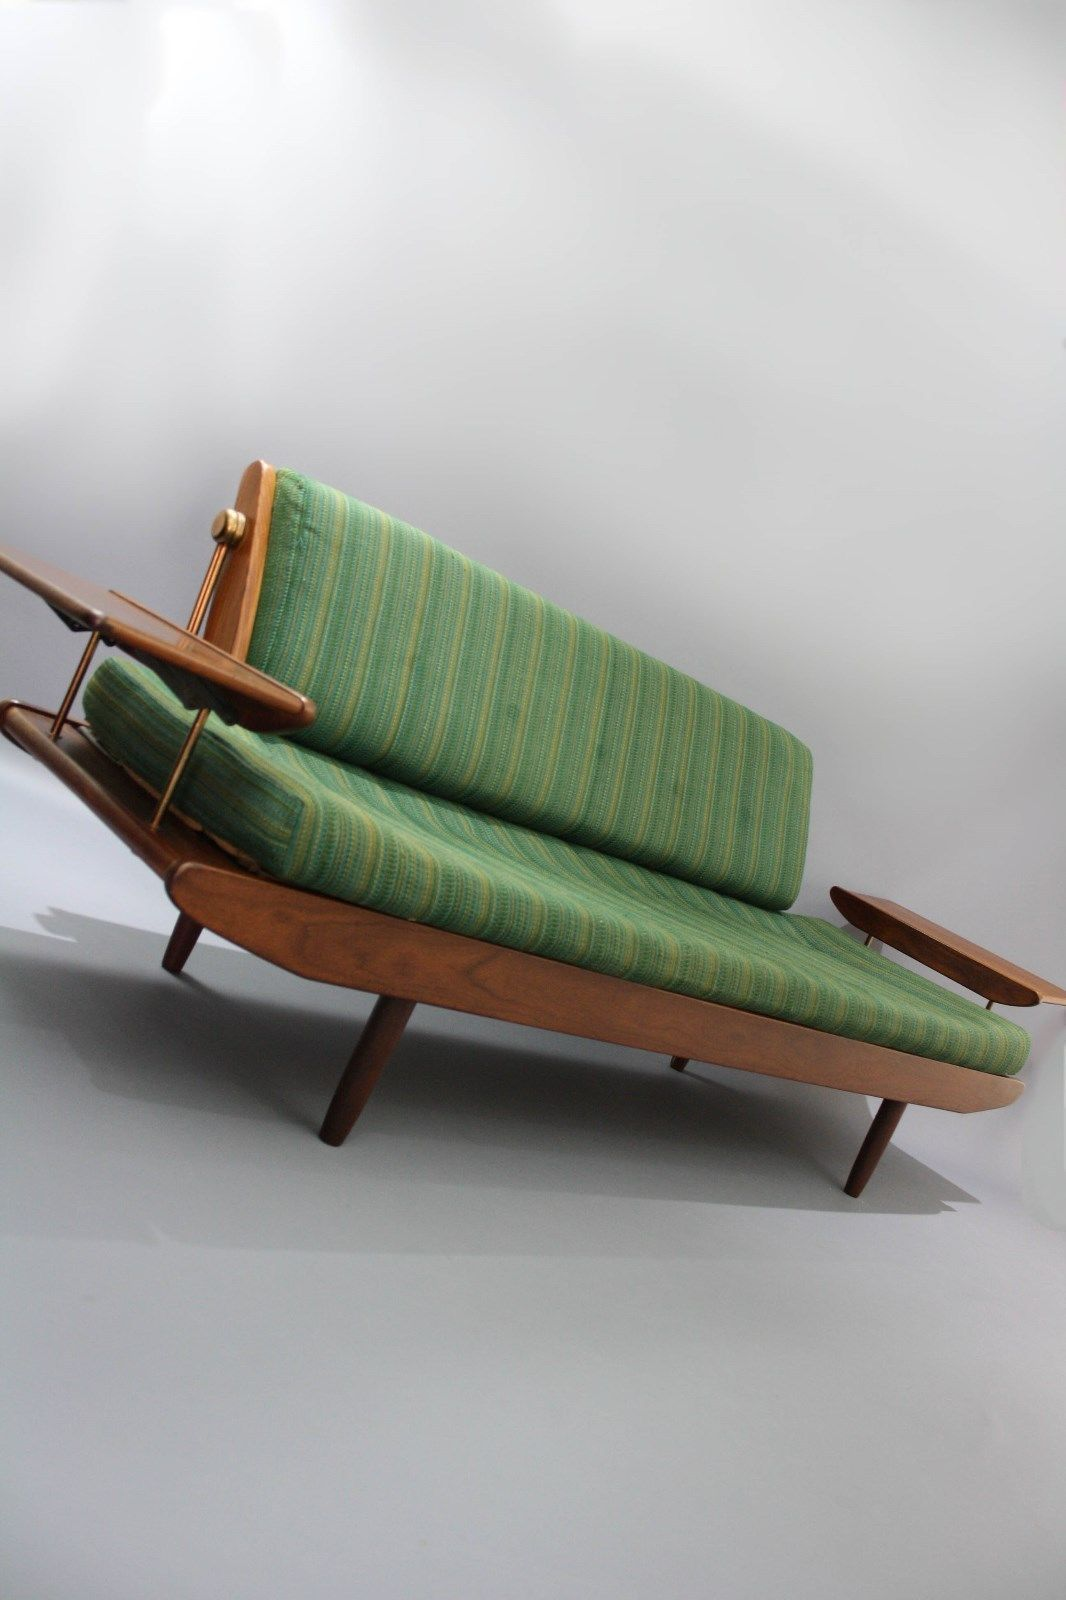 MID Century Toothill UK HEALS Teak Sofa DAY BED Retro Vintage Lounge Couch  Danish ERA in. MID Century Toothill UK HEALS Teak Sofa DAY BED Retro Vintage